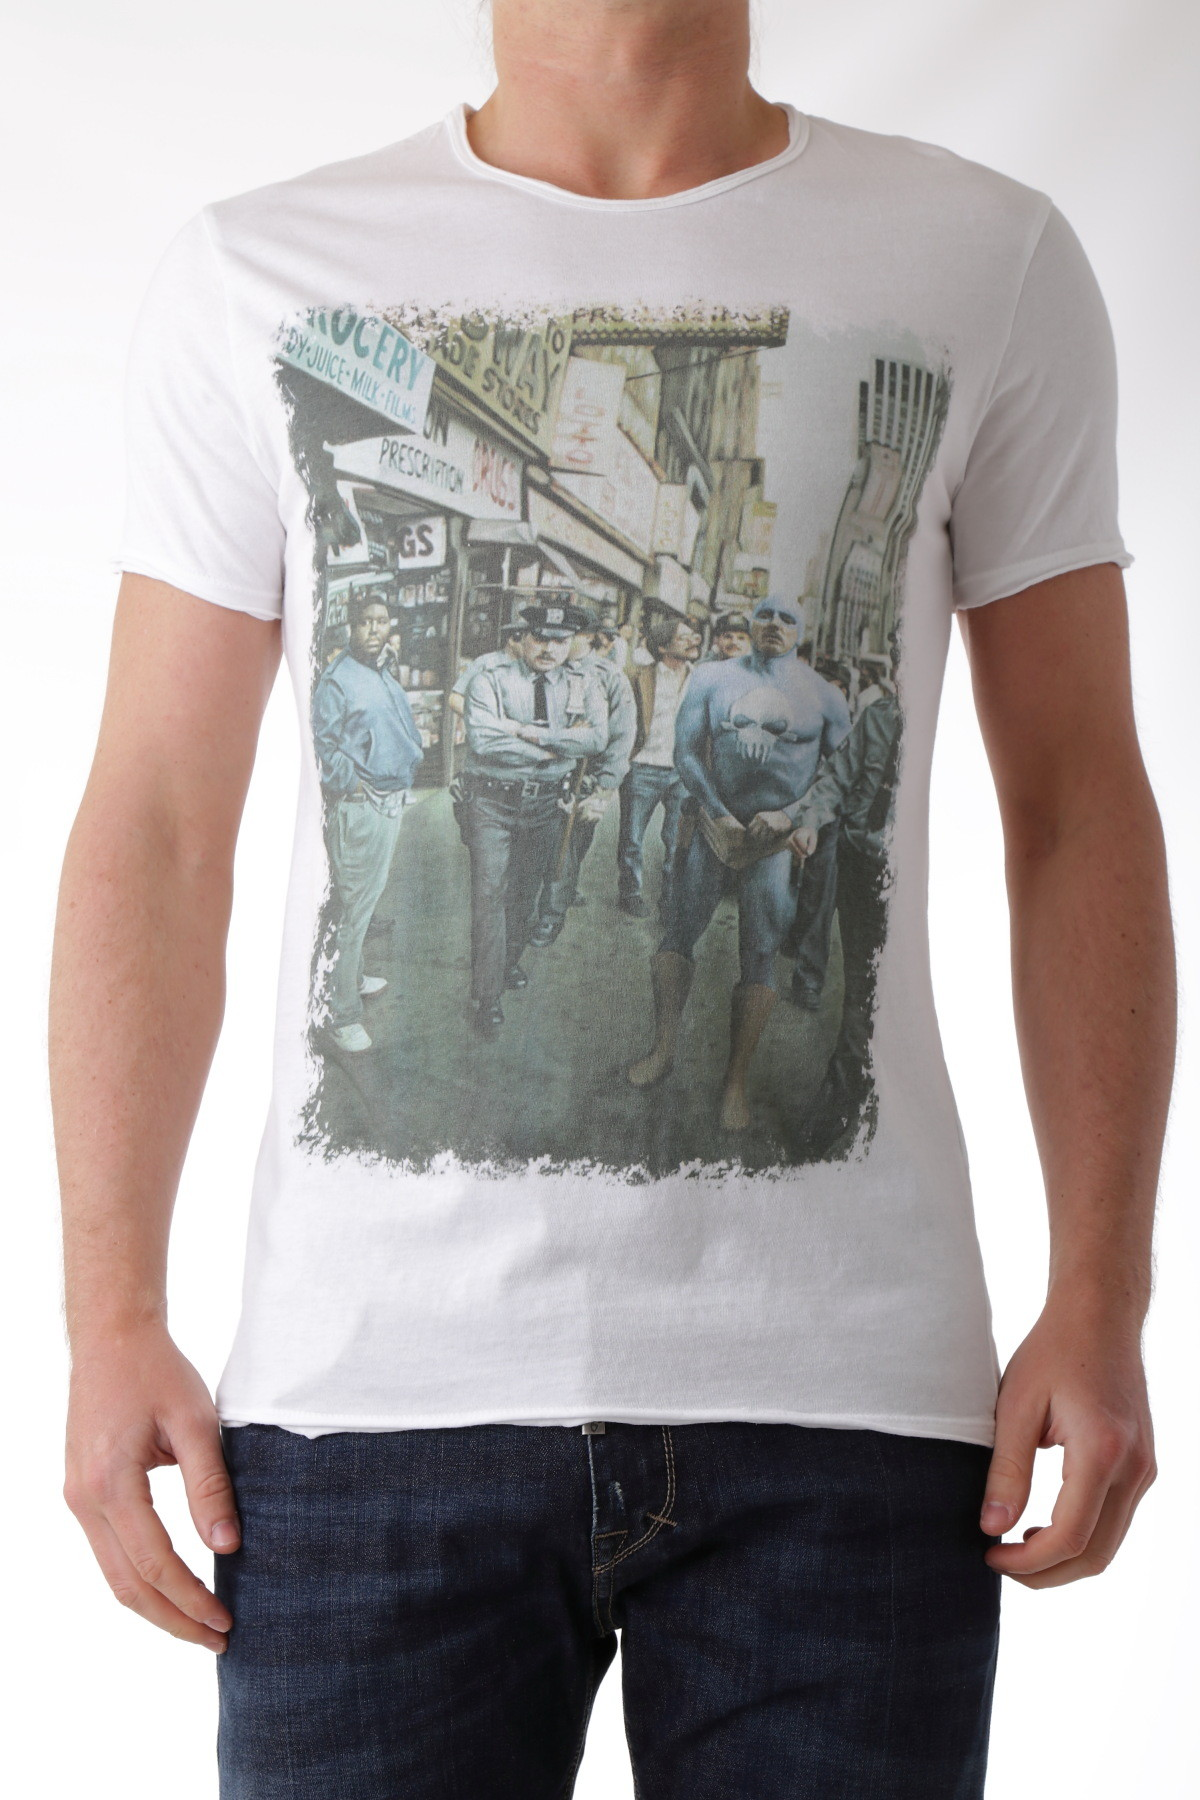 Tee Shirts Made in Italy